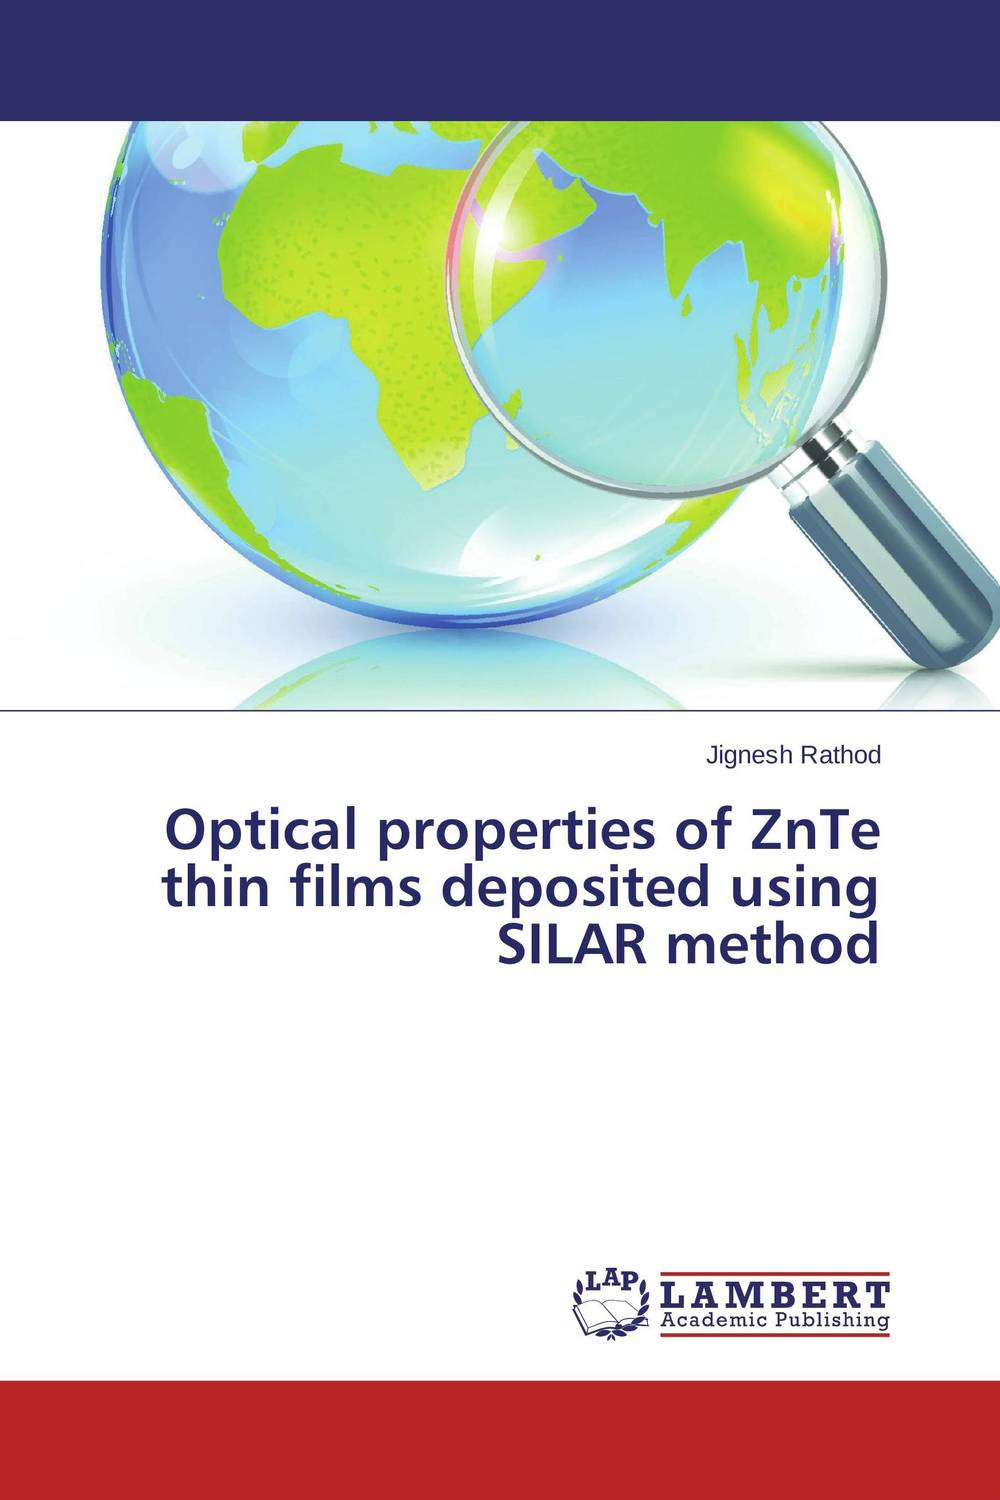 Optical properties of ZnTe thin films deposited using SILAR method optical and electronic properties of diamondoids